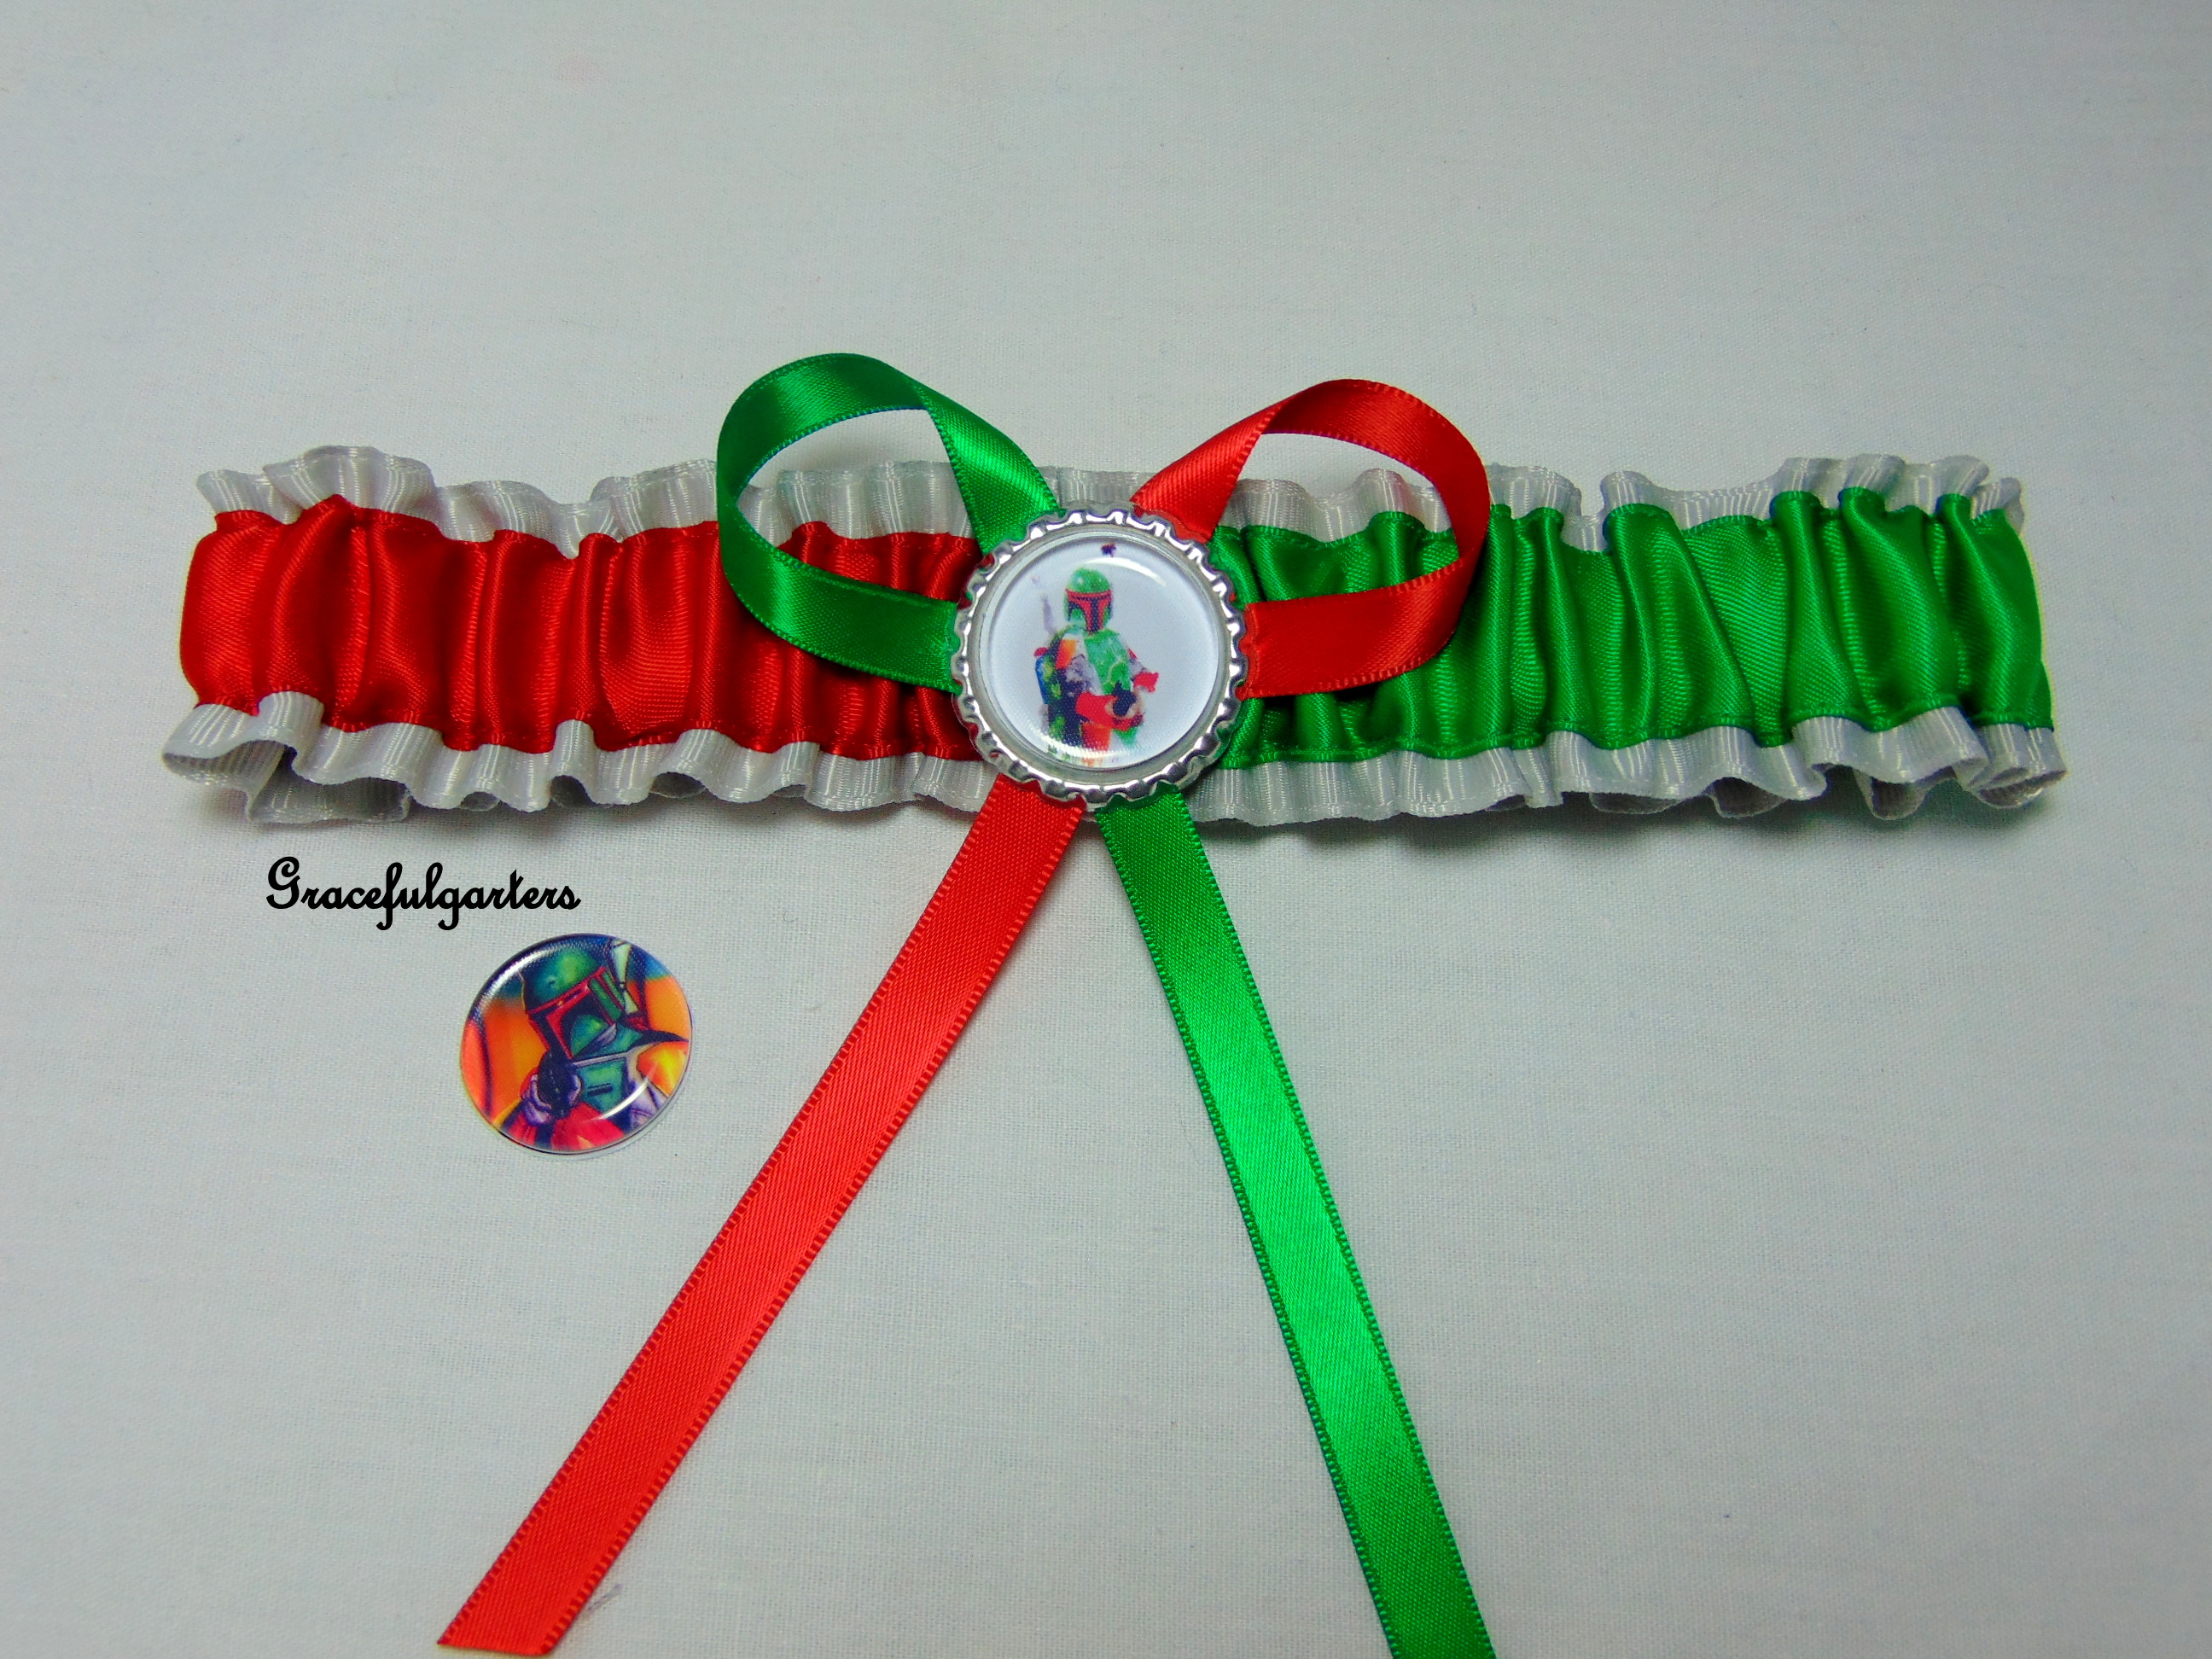 Starwars Boba Fett Bridal Wedding Garter